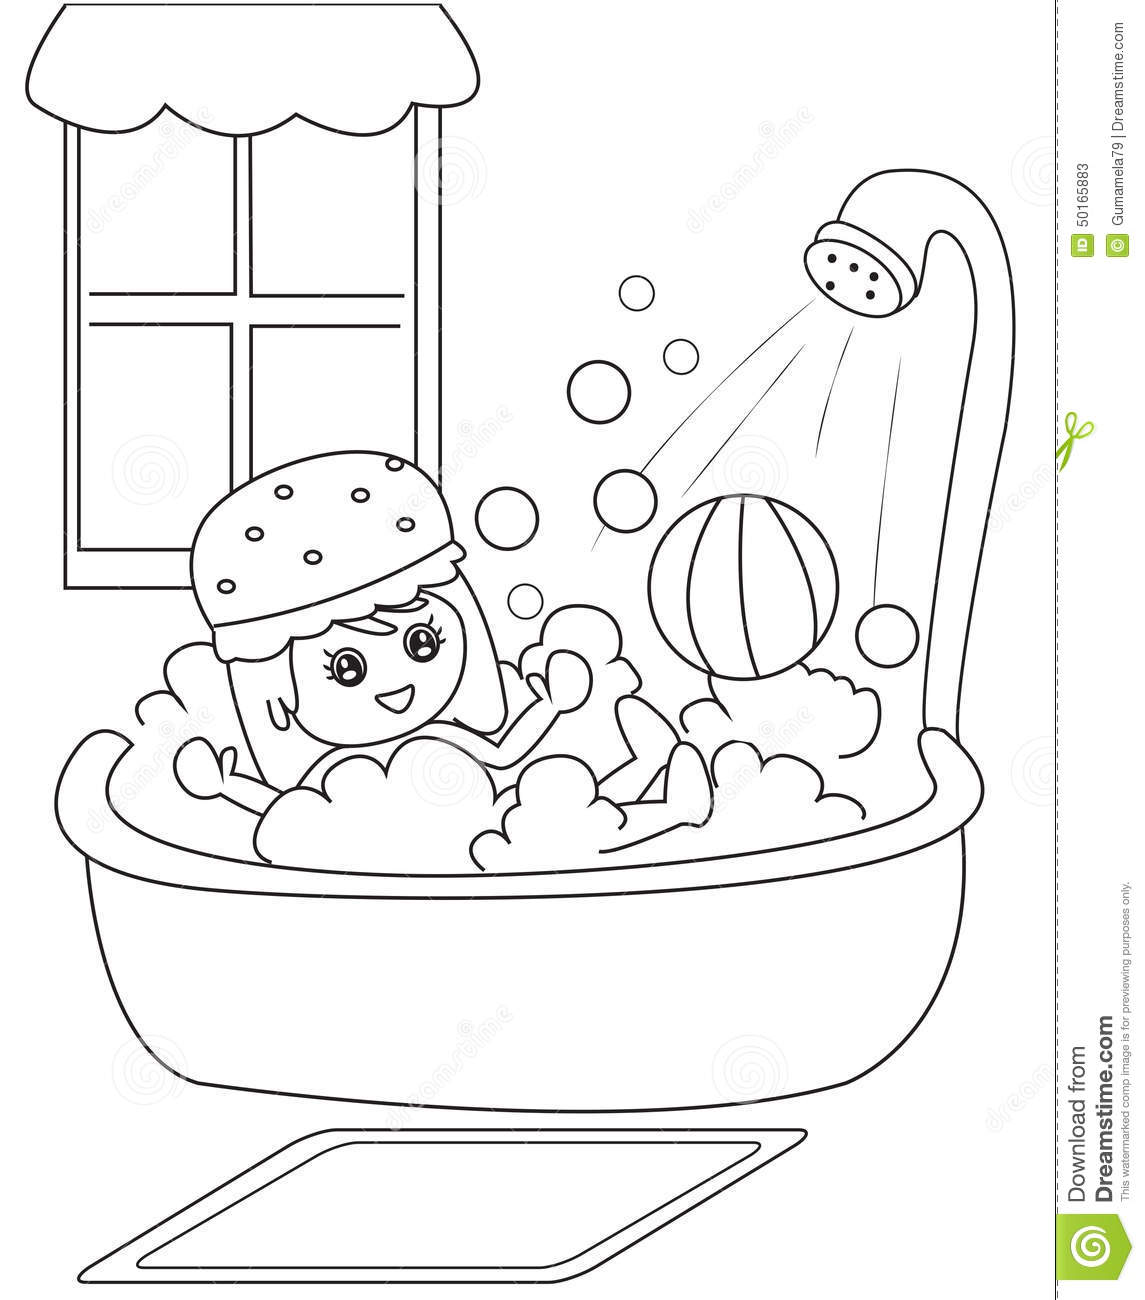 bathroom coloring pages - photo#43